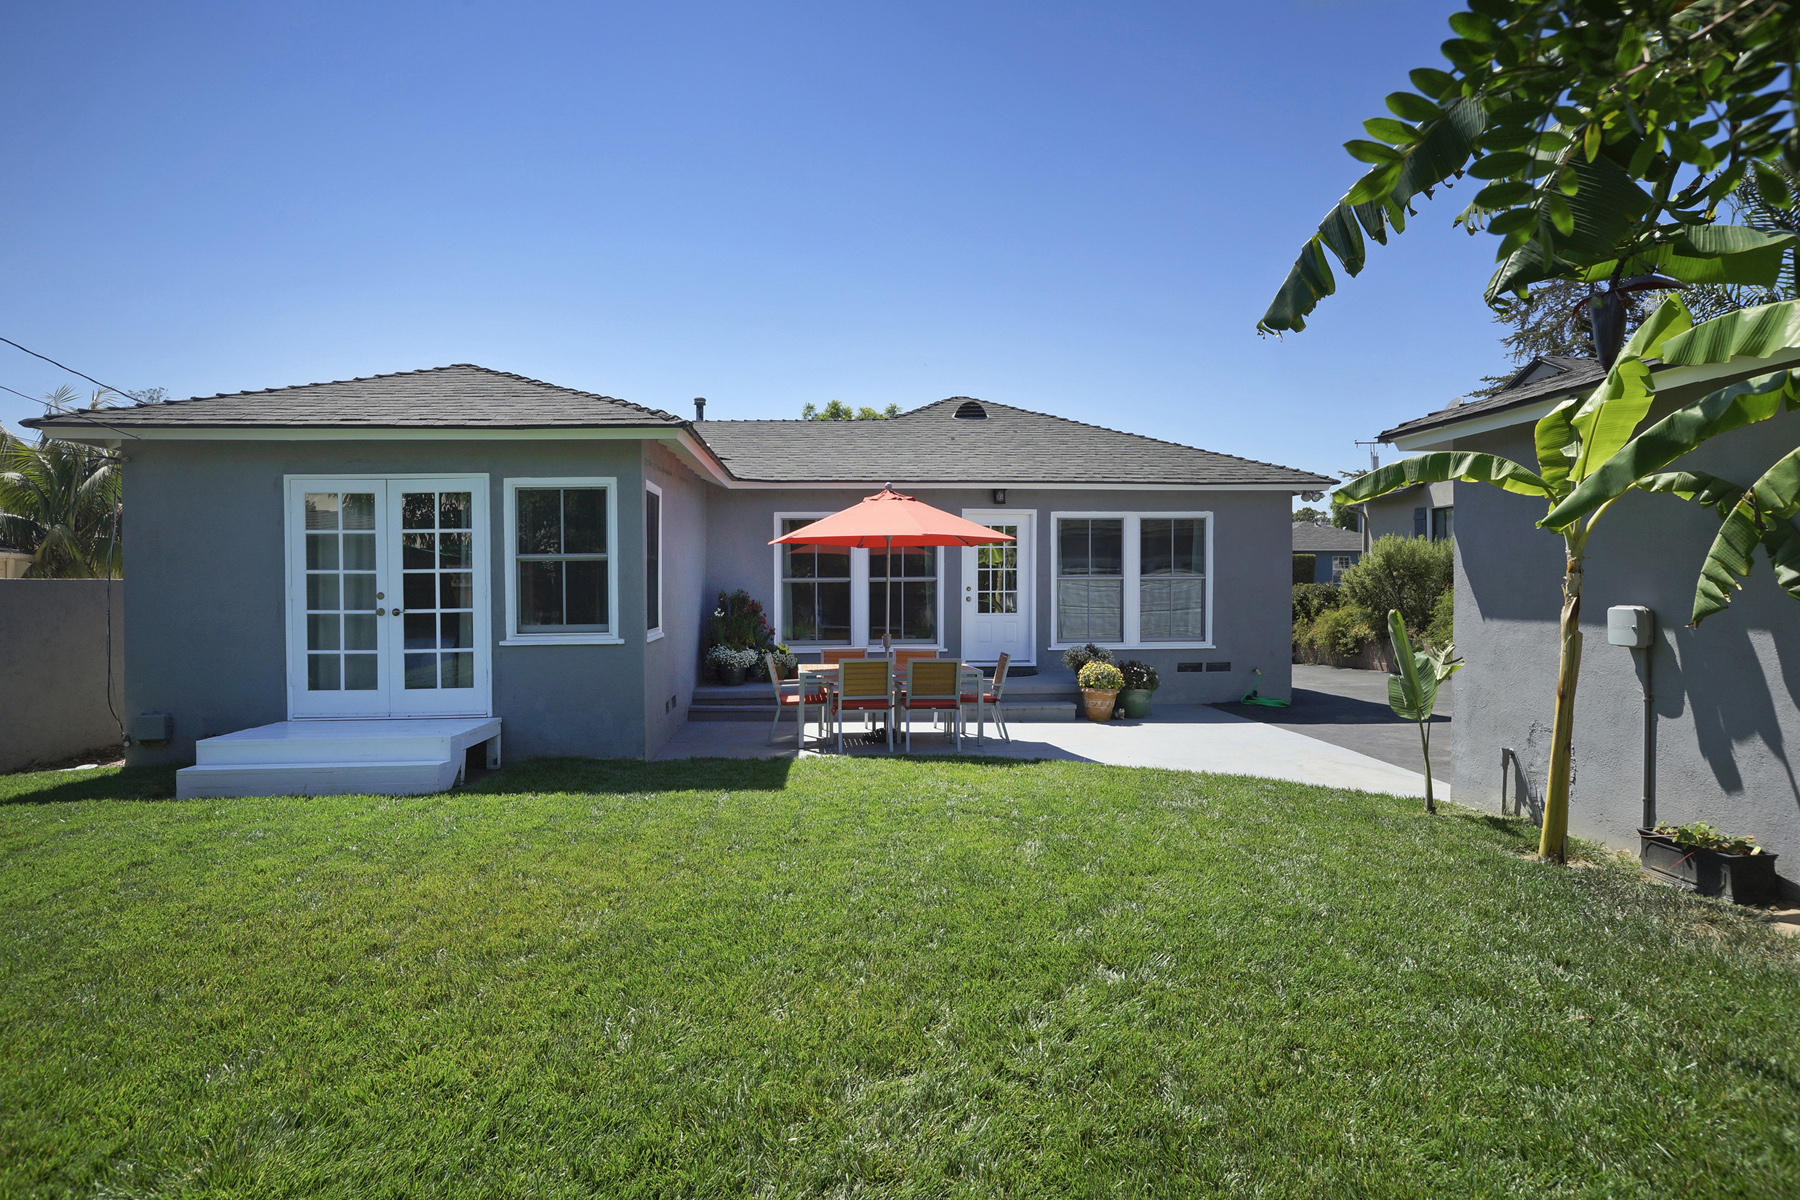 Property photo for 25 S Ontare Rd Santa Barbara, California 93105 - 13-2567